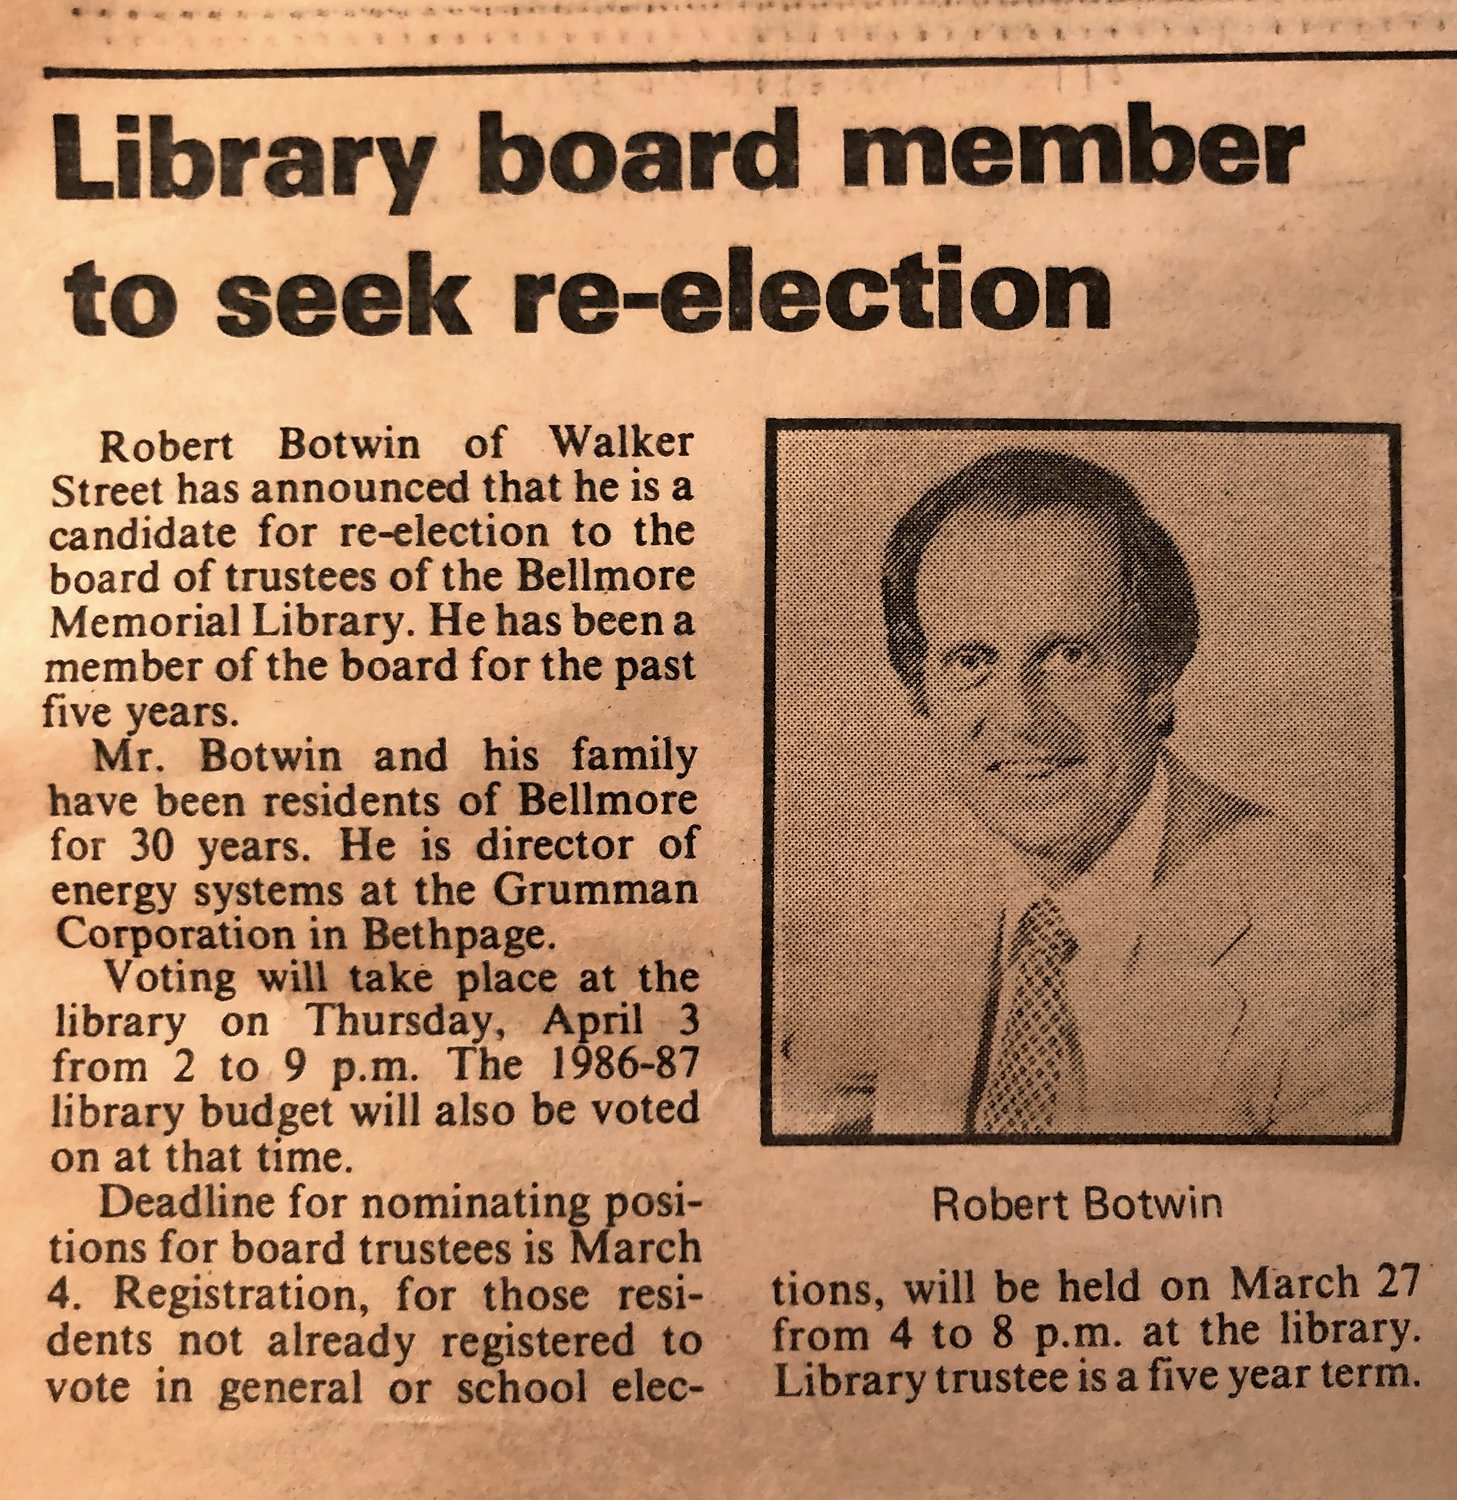 An old clipping of the Bellmore Life shows a brief on Botwin seeking re-election to the Bellmore Memorial Library board of trustees. He served as a trustee for nearly four decades.